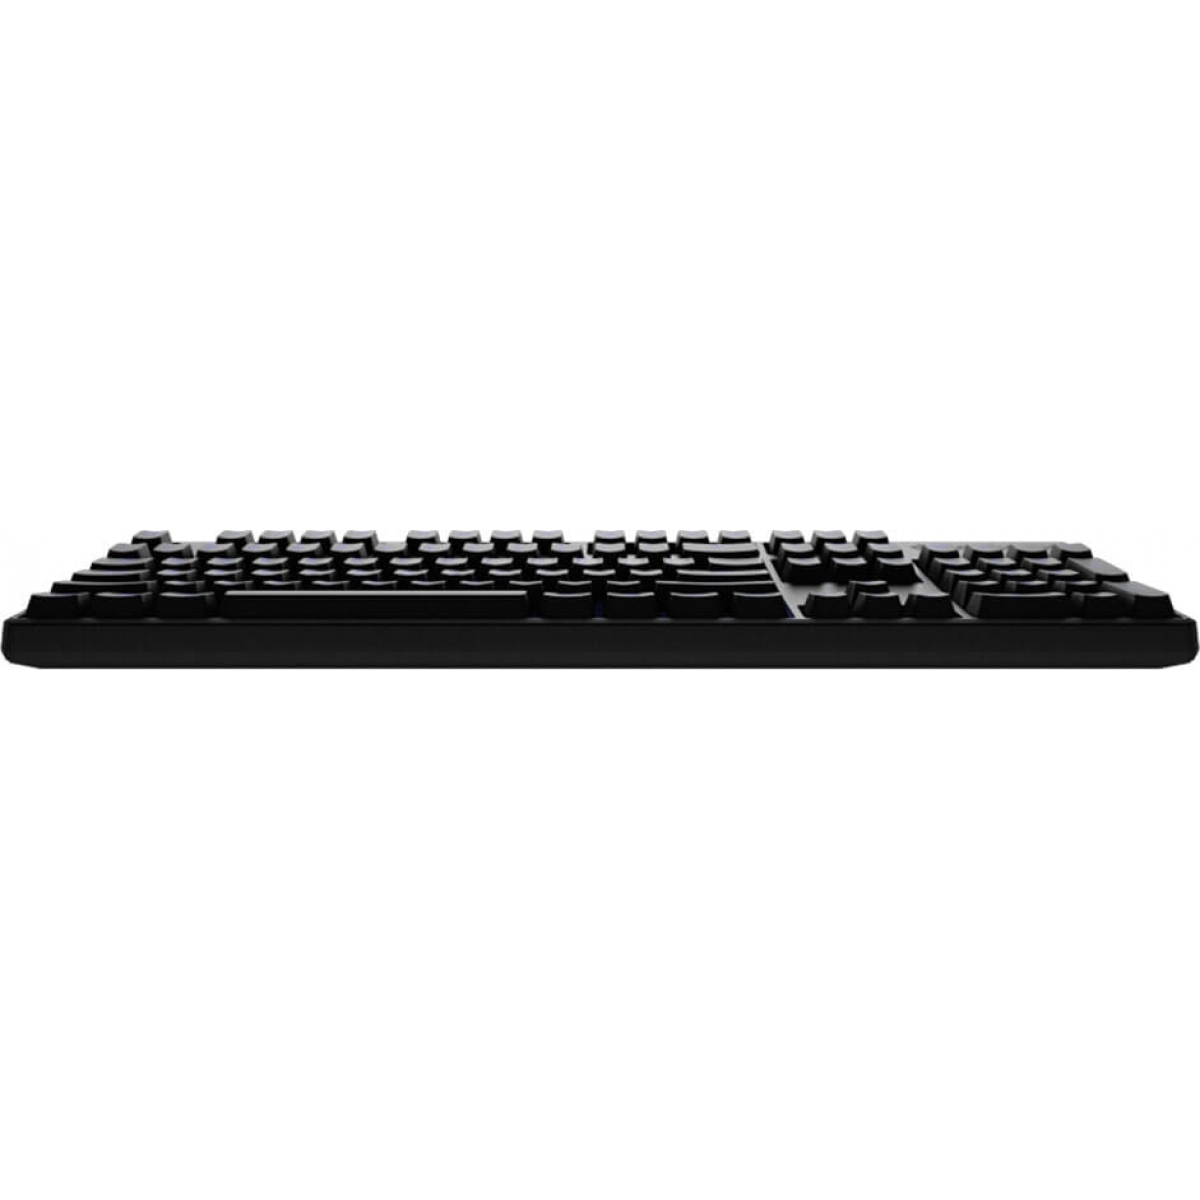 Teclado Mecânico Steelseries Gamer Apex M500 Cherry MX Red 64490 - Open Box